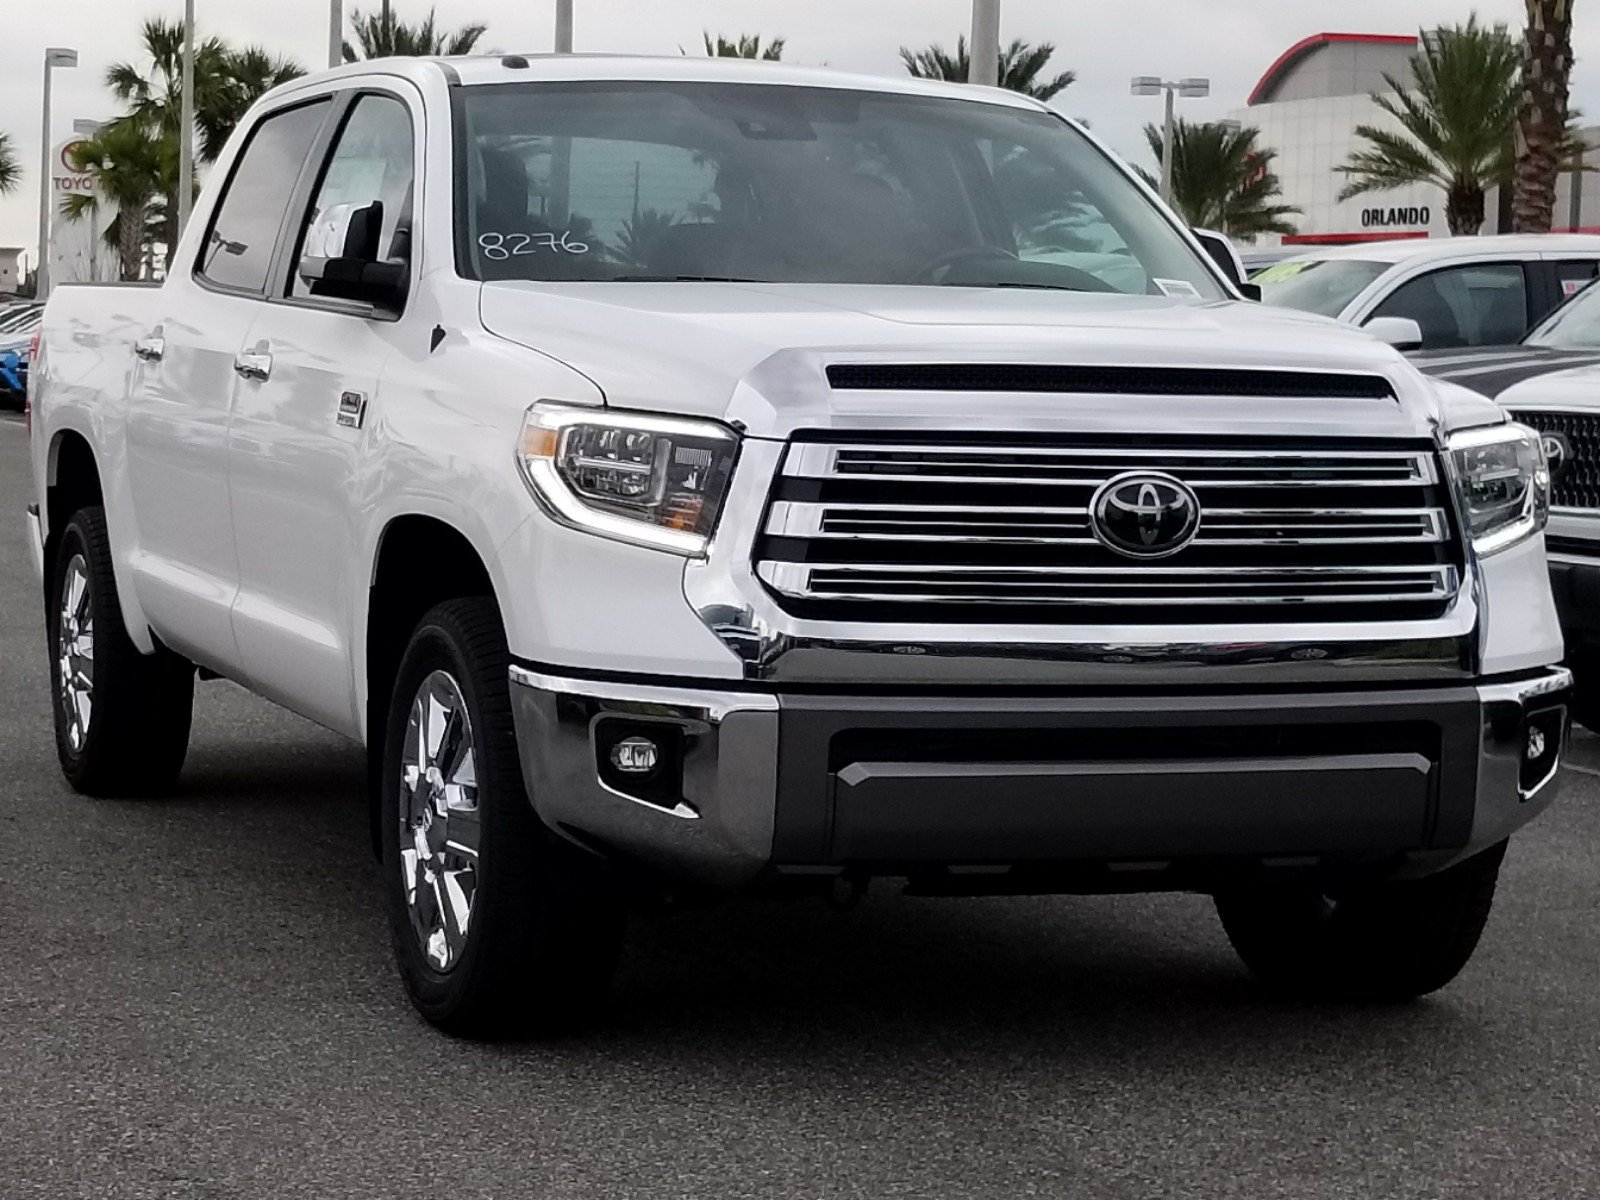 New 2018 Toyota Tundra 1794 Edition CrewMax in Orlando